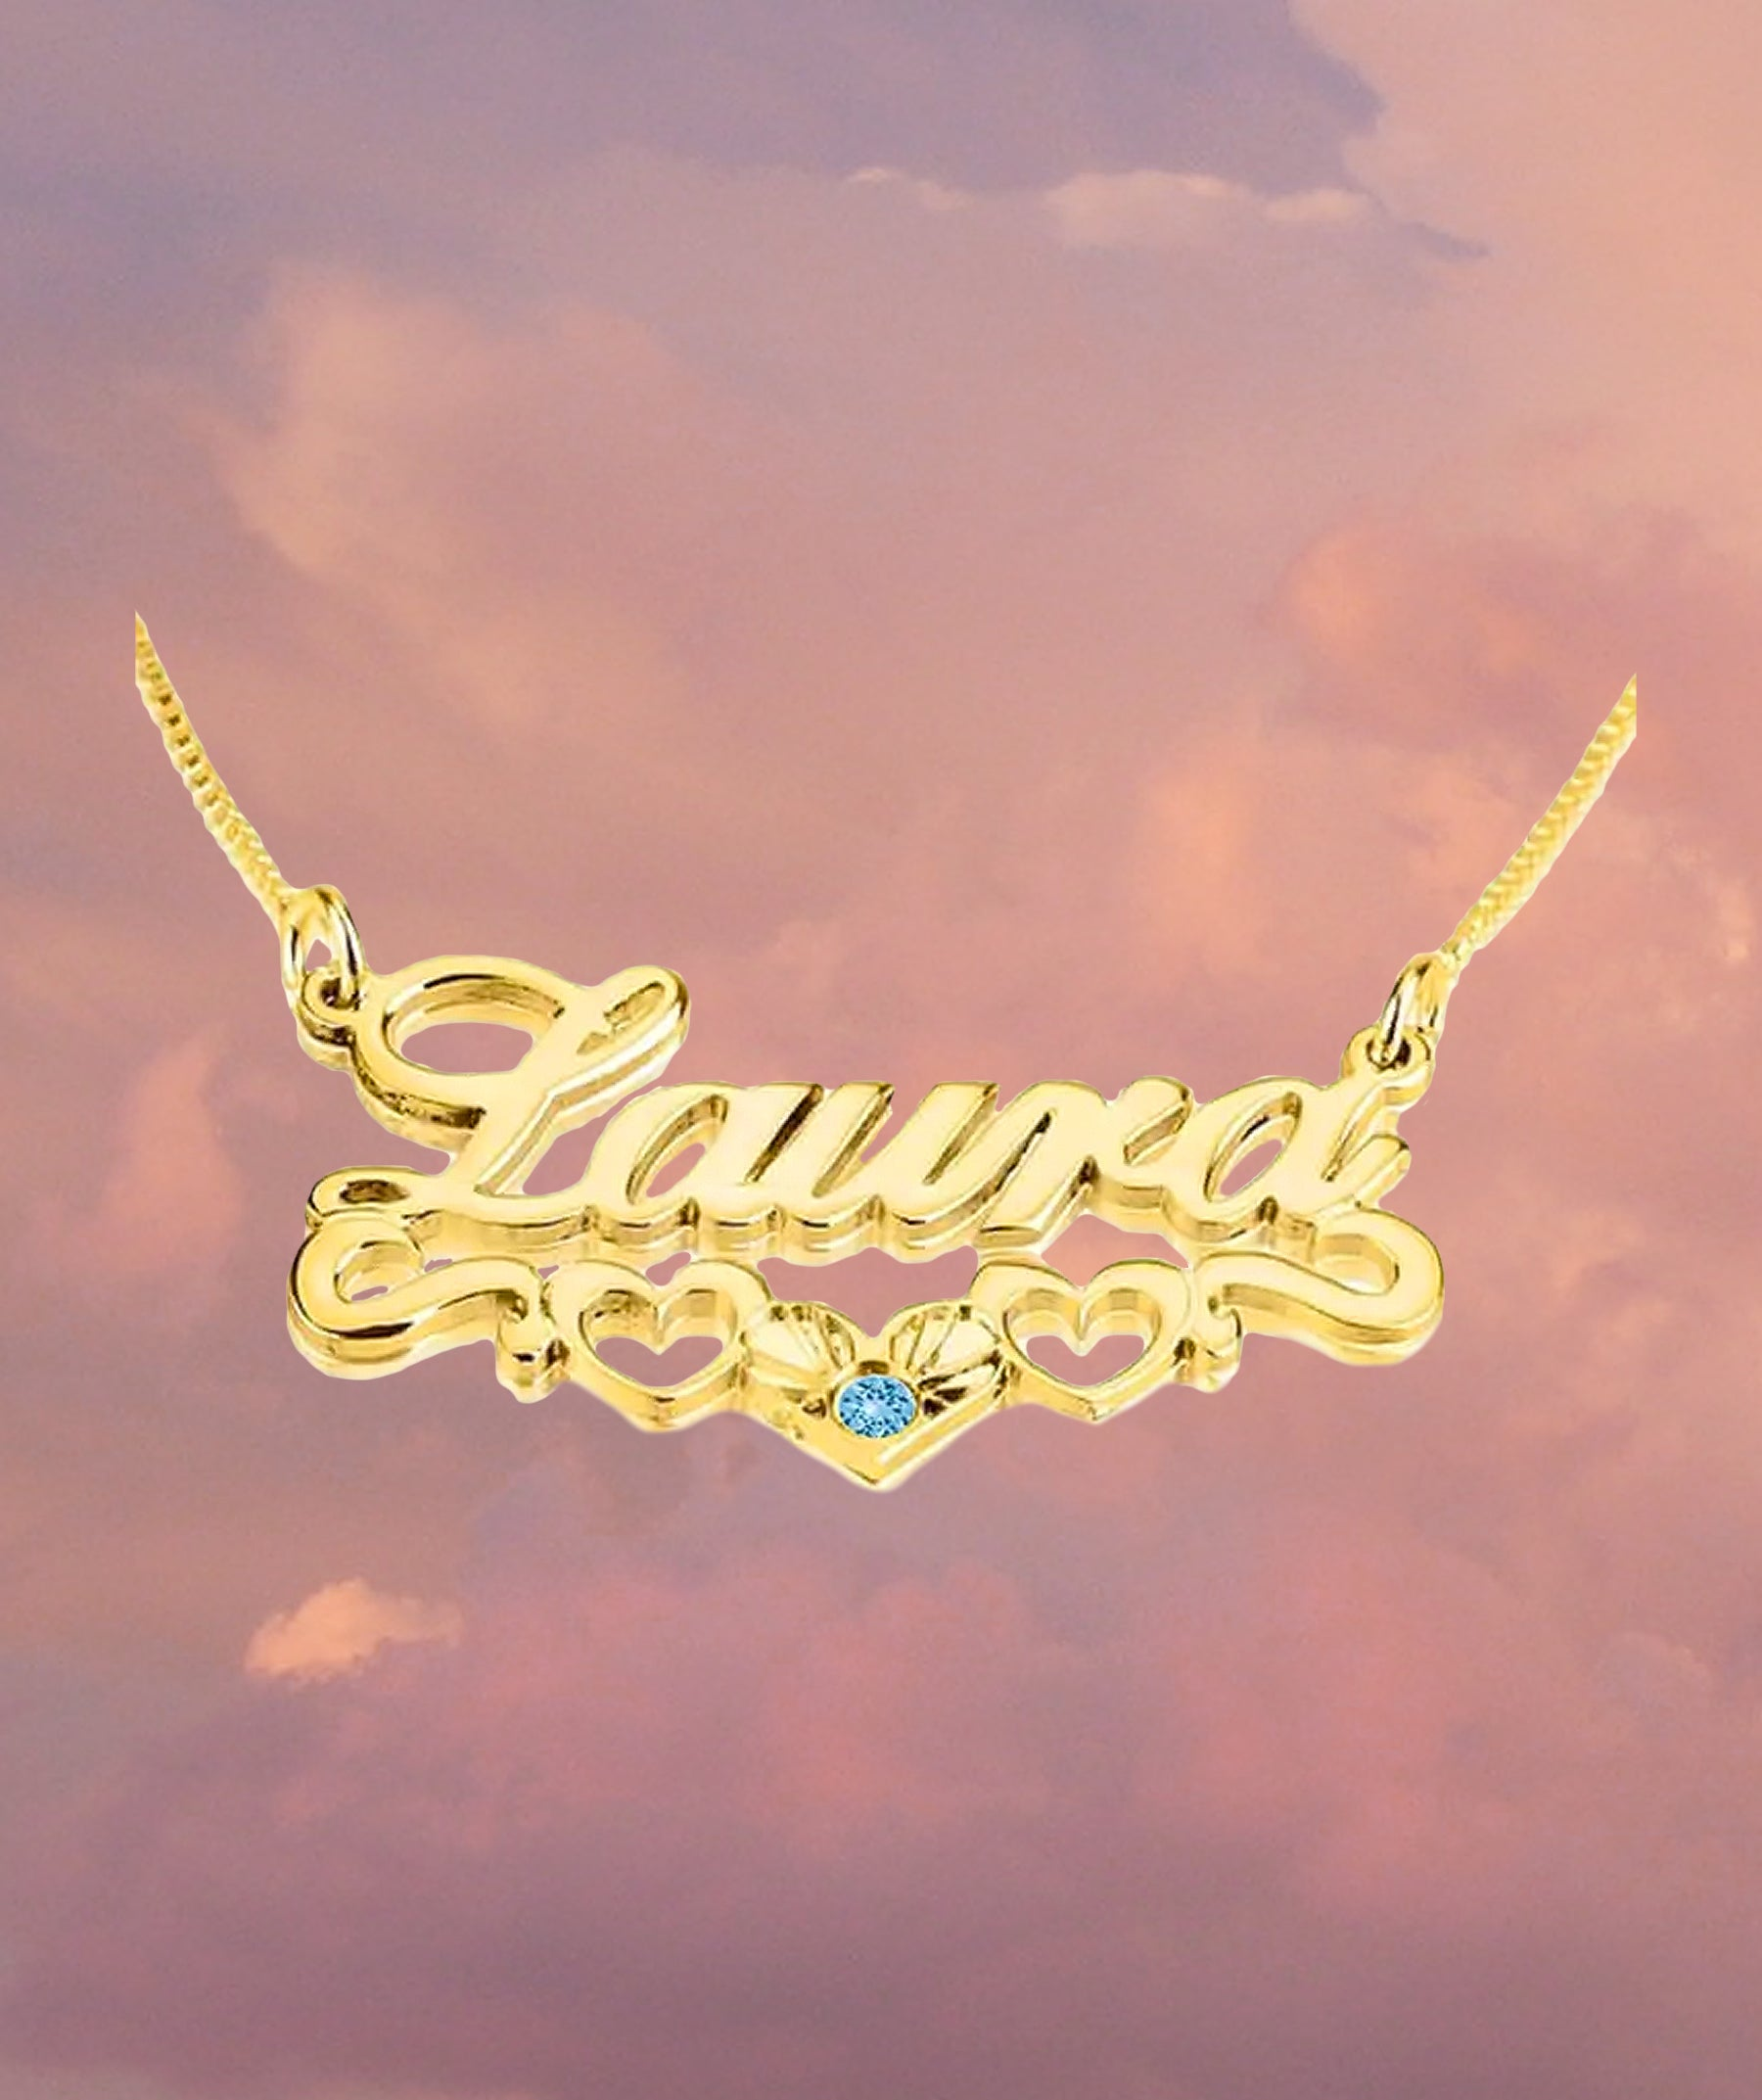 Muñeca Nameplate Necklace